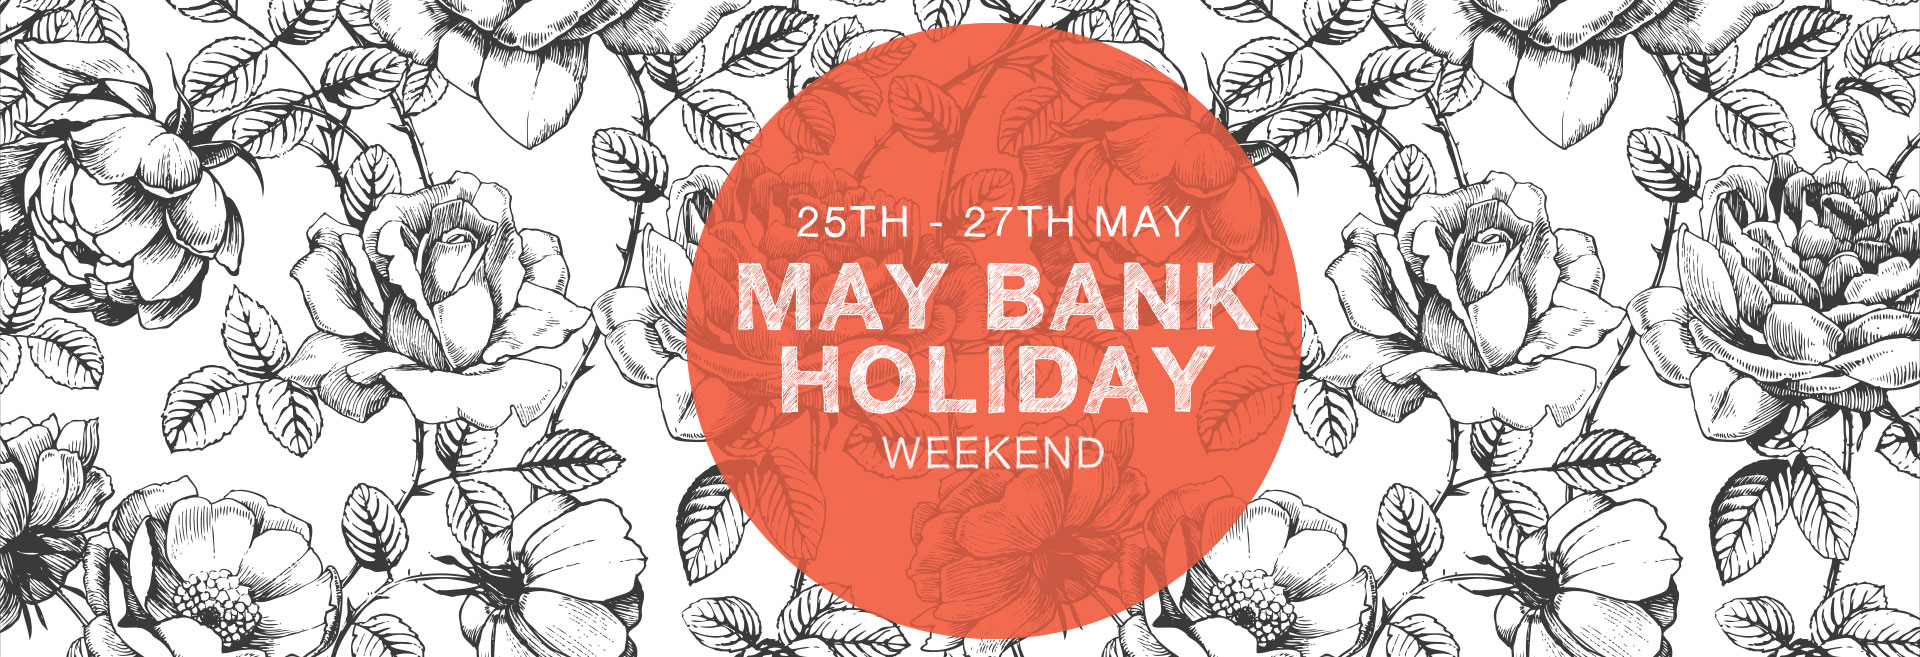 May Bank Holiday at The Cuckfield